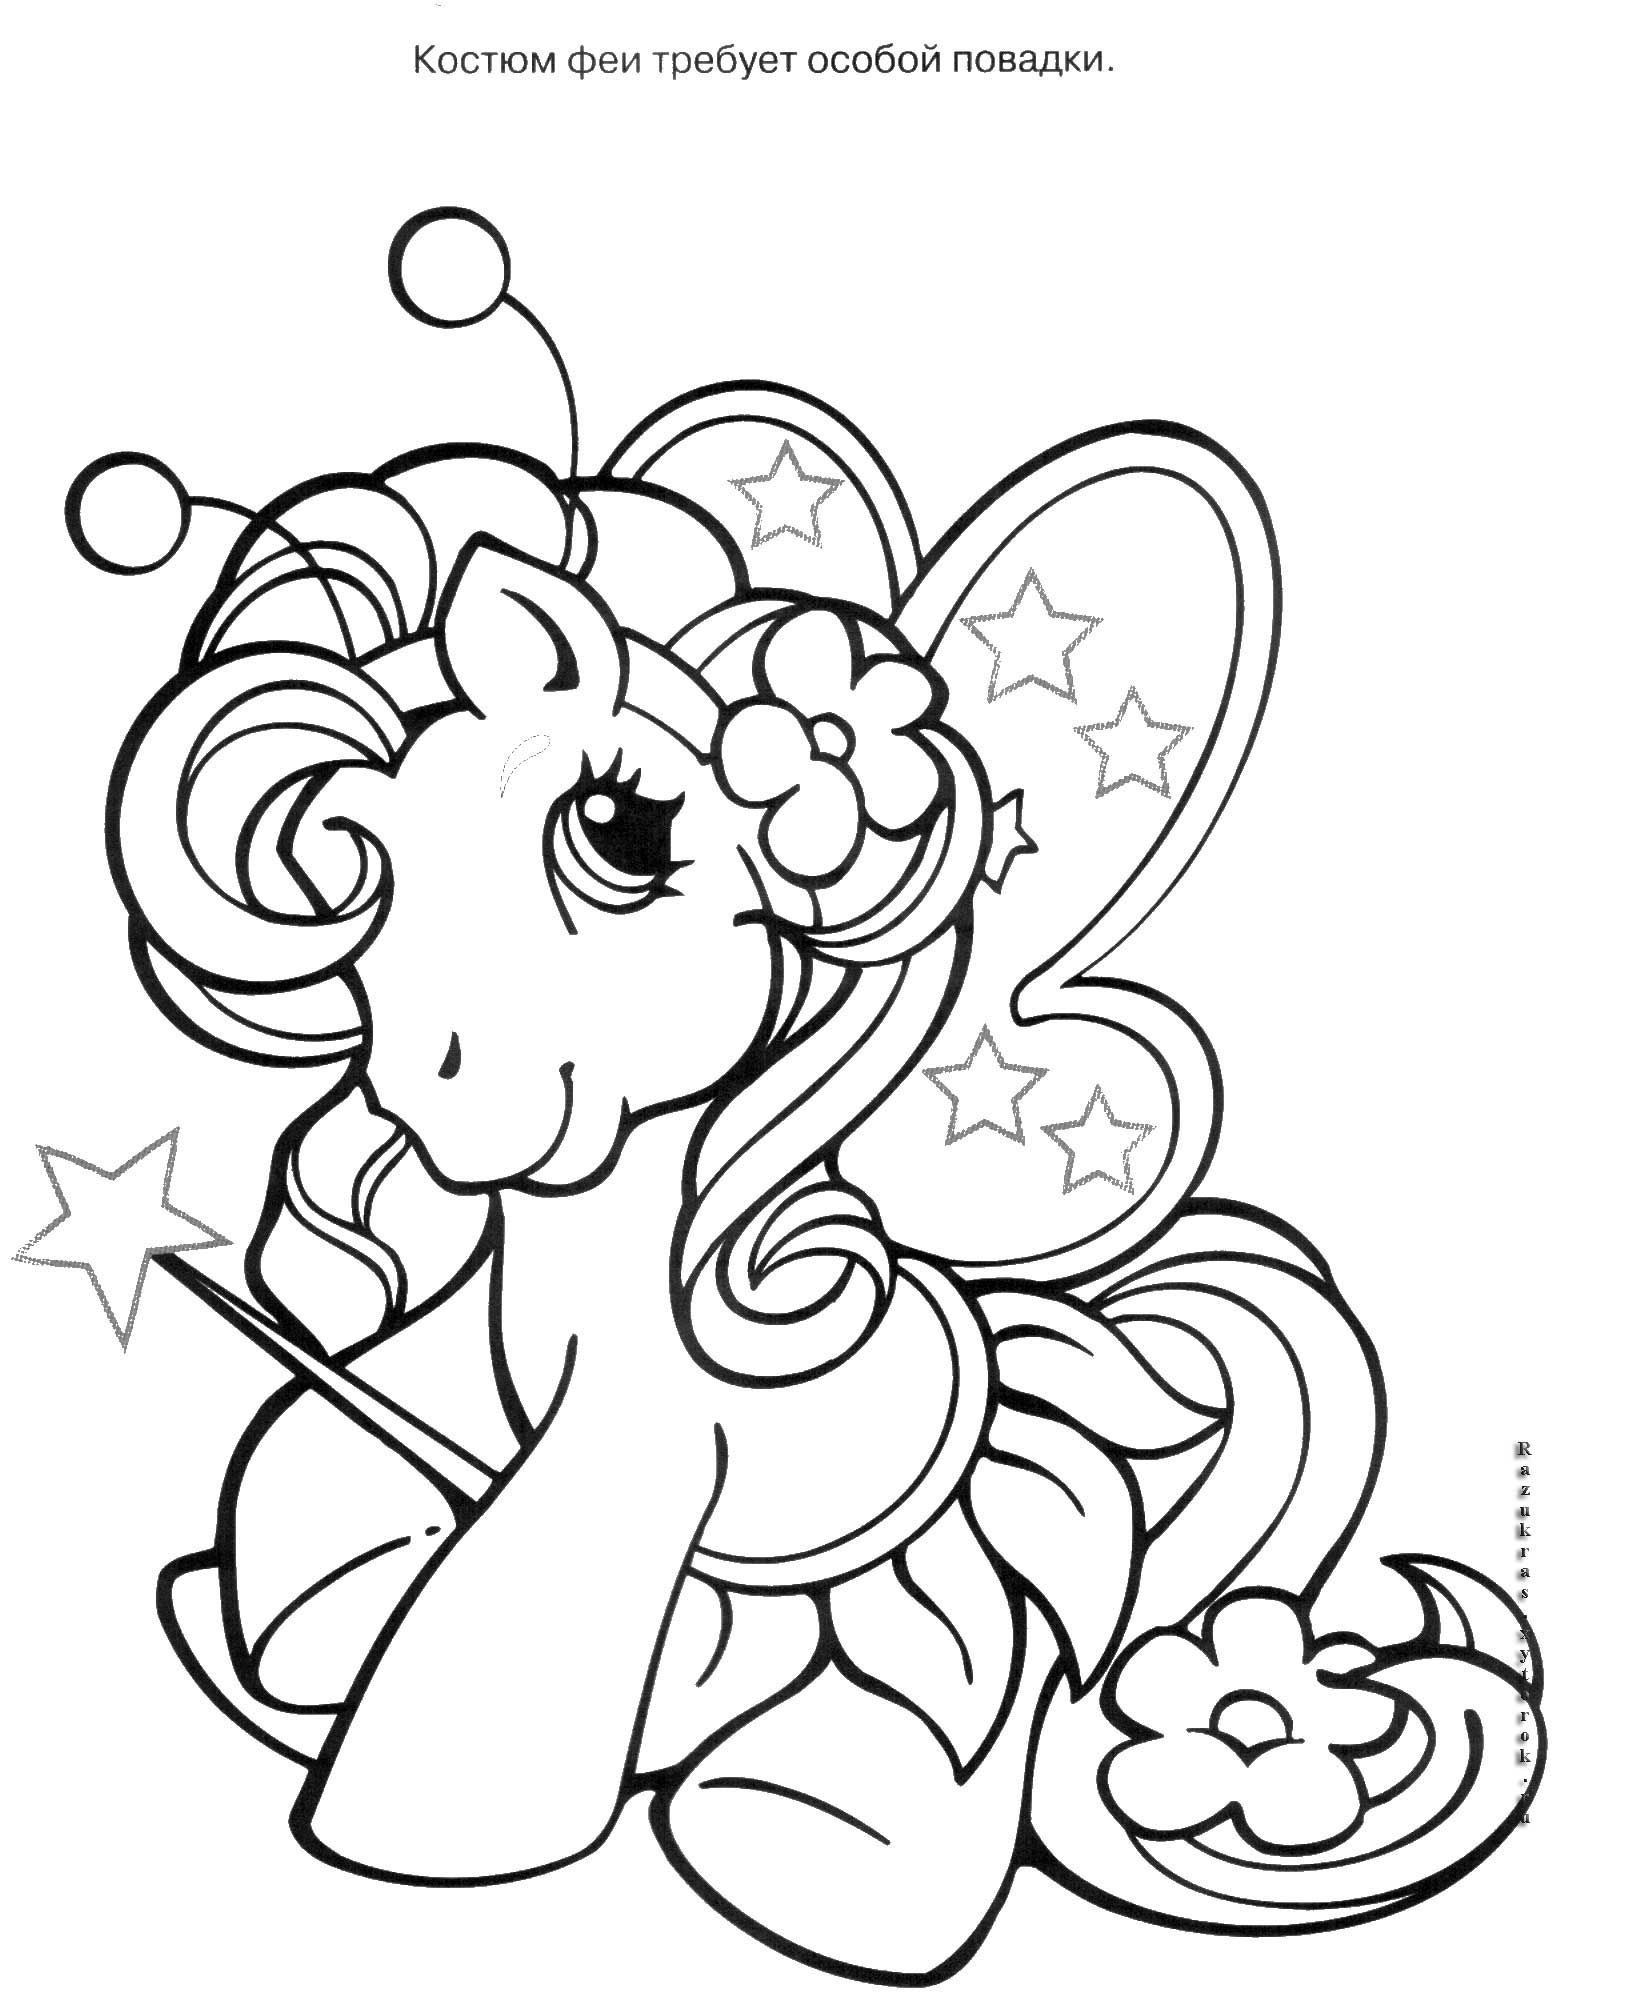 My Little Pony Unicorn Coloring Page Youngandtae Com Unicorn Coloring Pages Horse Coloring Pages Animal Coloring Pages